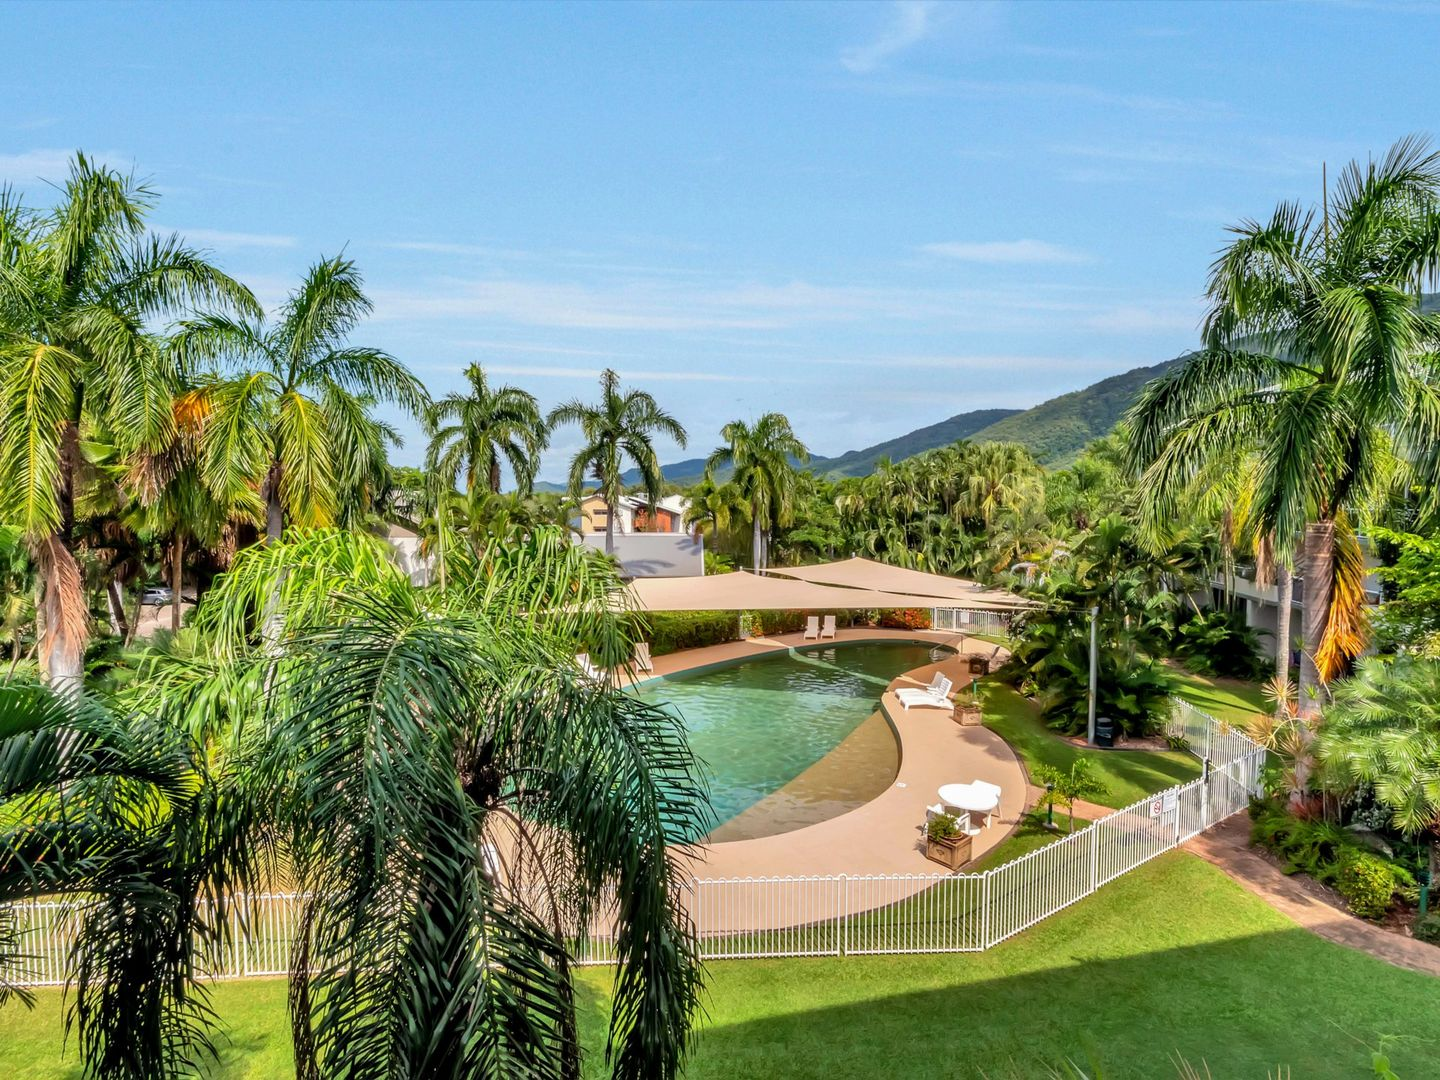 102/305-341 Coral Coast Drive, Palm Cove QLD 4879, Image 1